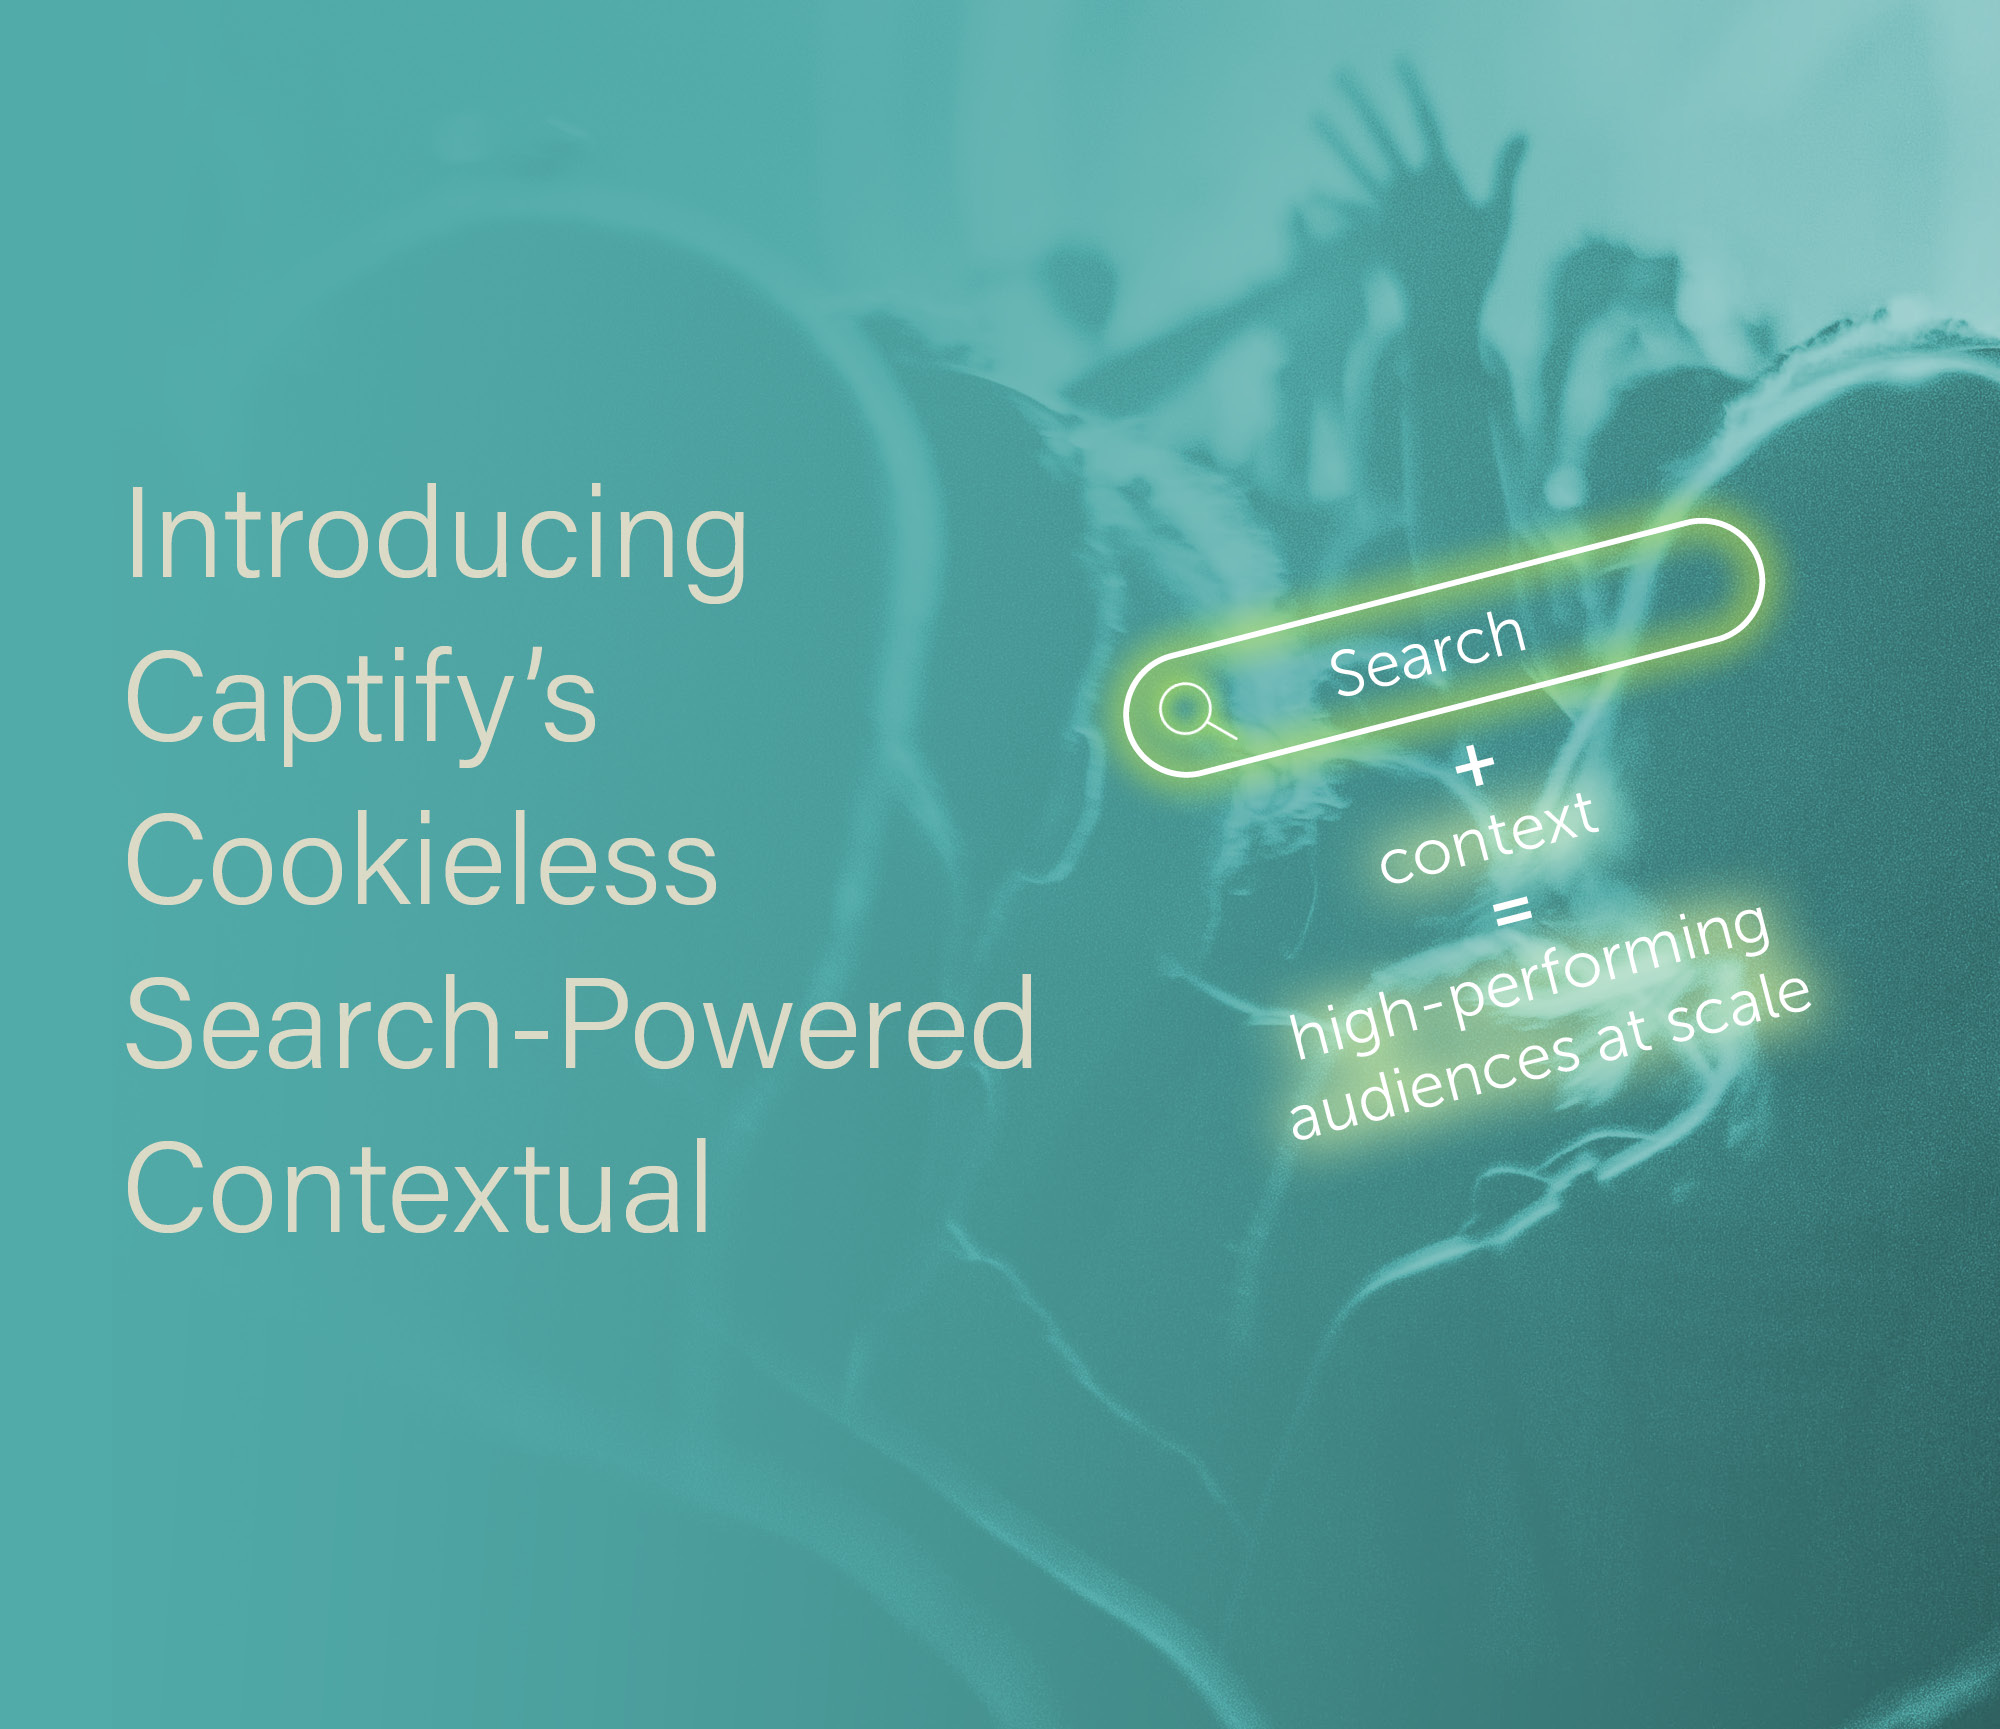 The Only Contextual Solution With Search At Its Core